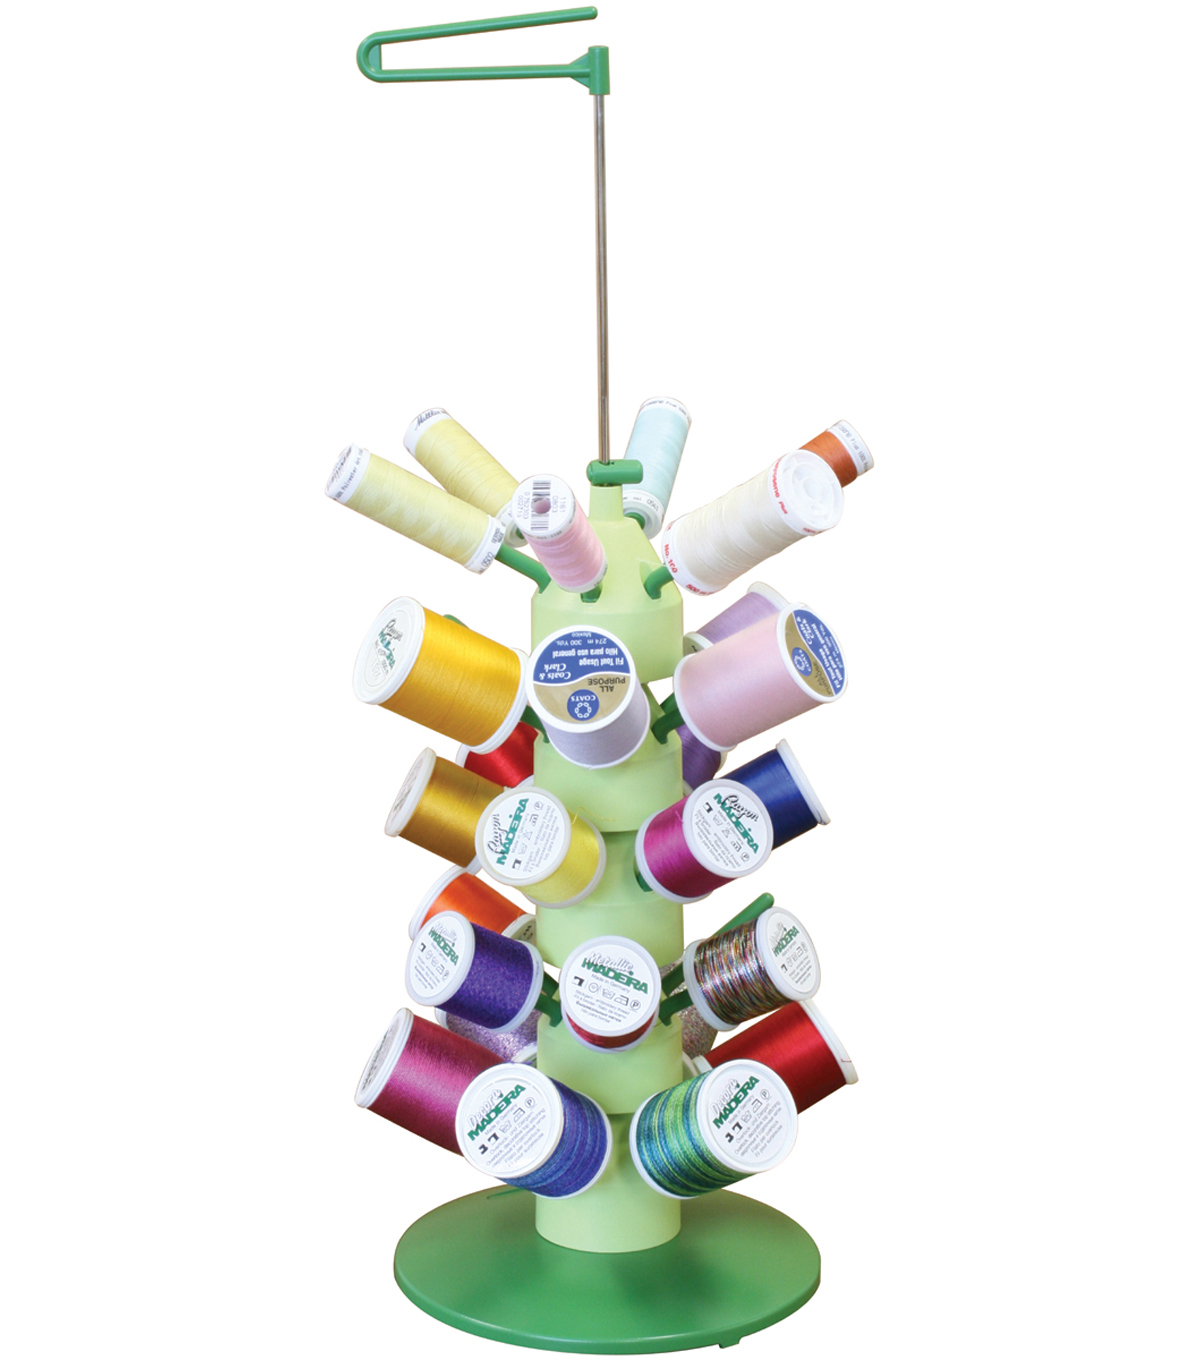 Clover-Nancy Zieman Stack 'n Stitch Thread Tower